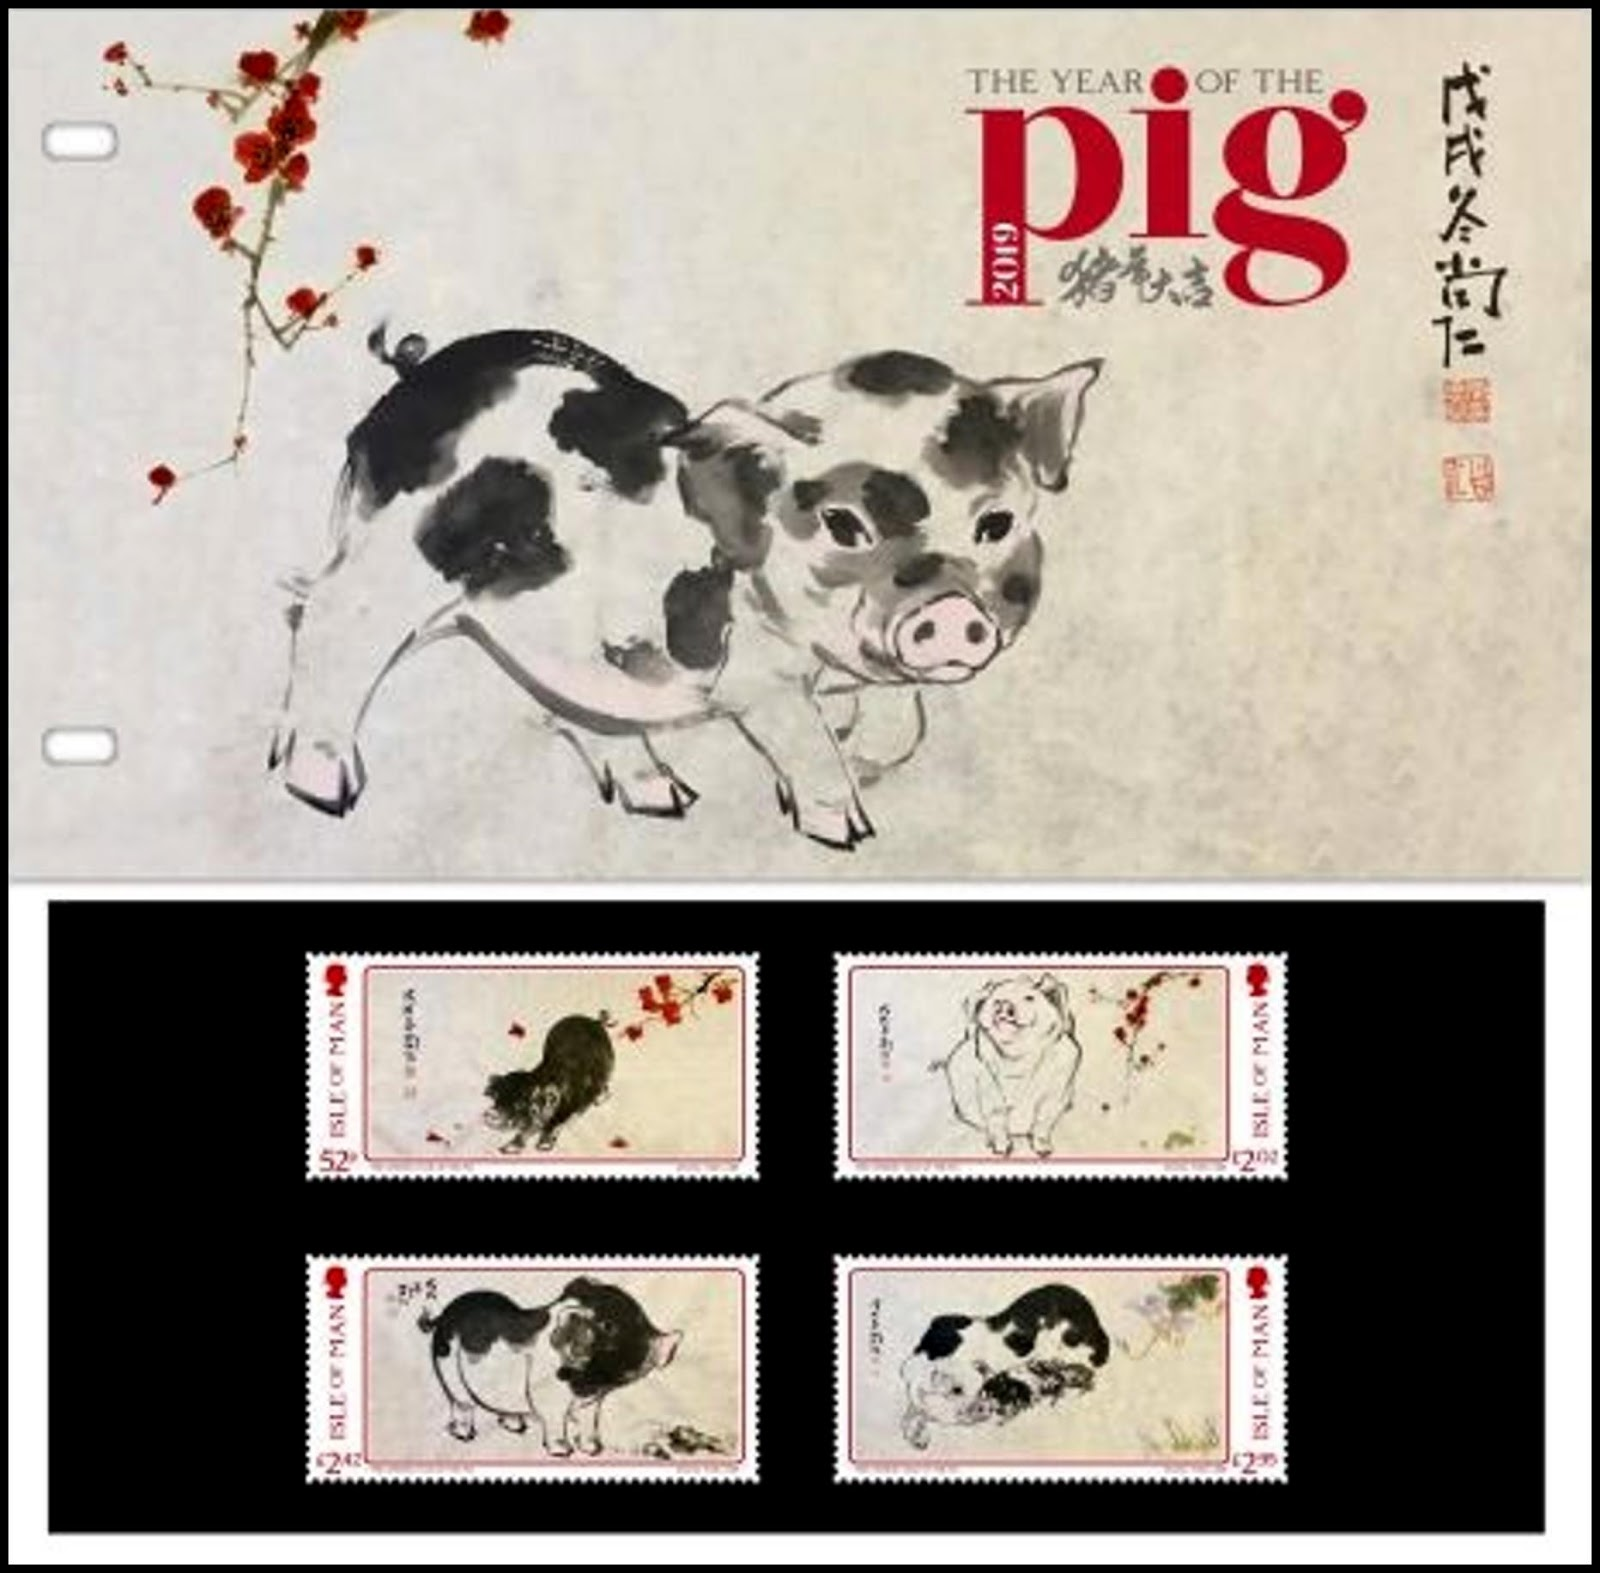 Isle of Man - Year of the Pig (January 22, 2019) presentation pack